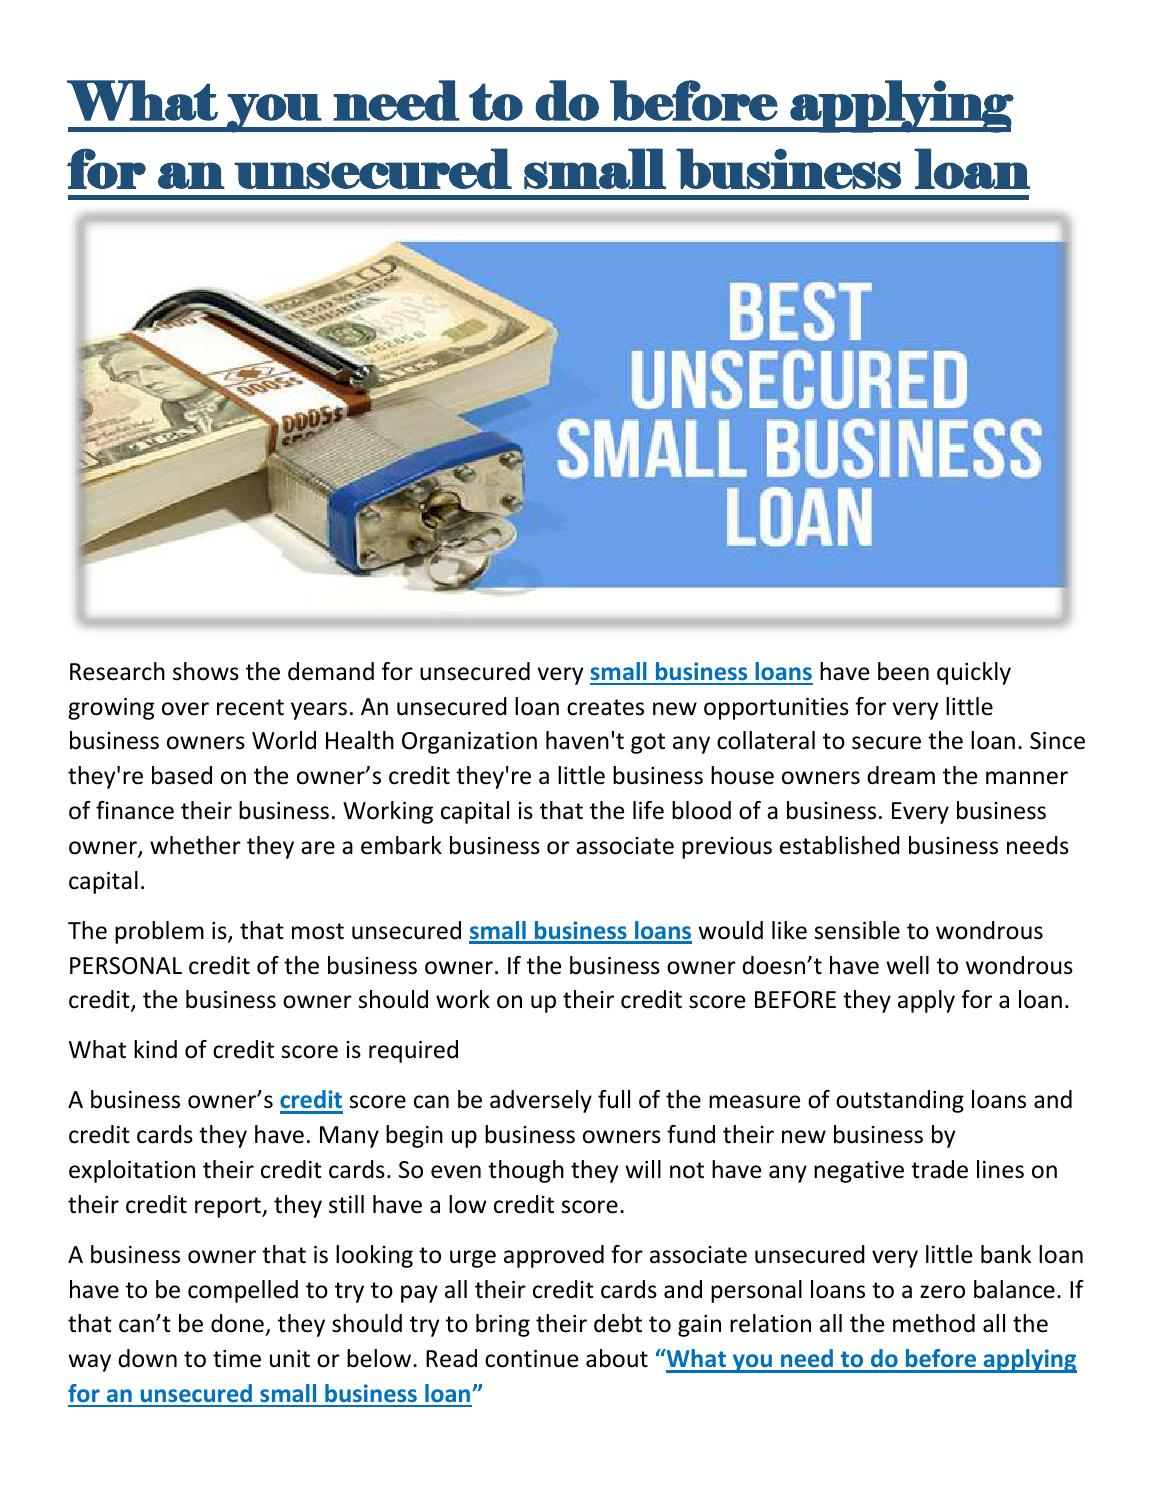 What you need to do before applying for an unsecured small business ...